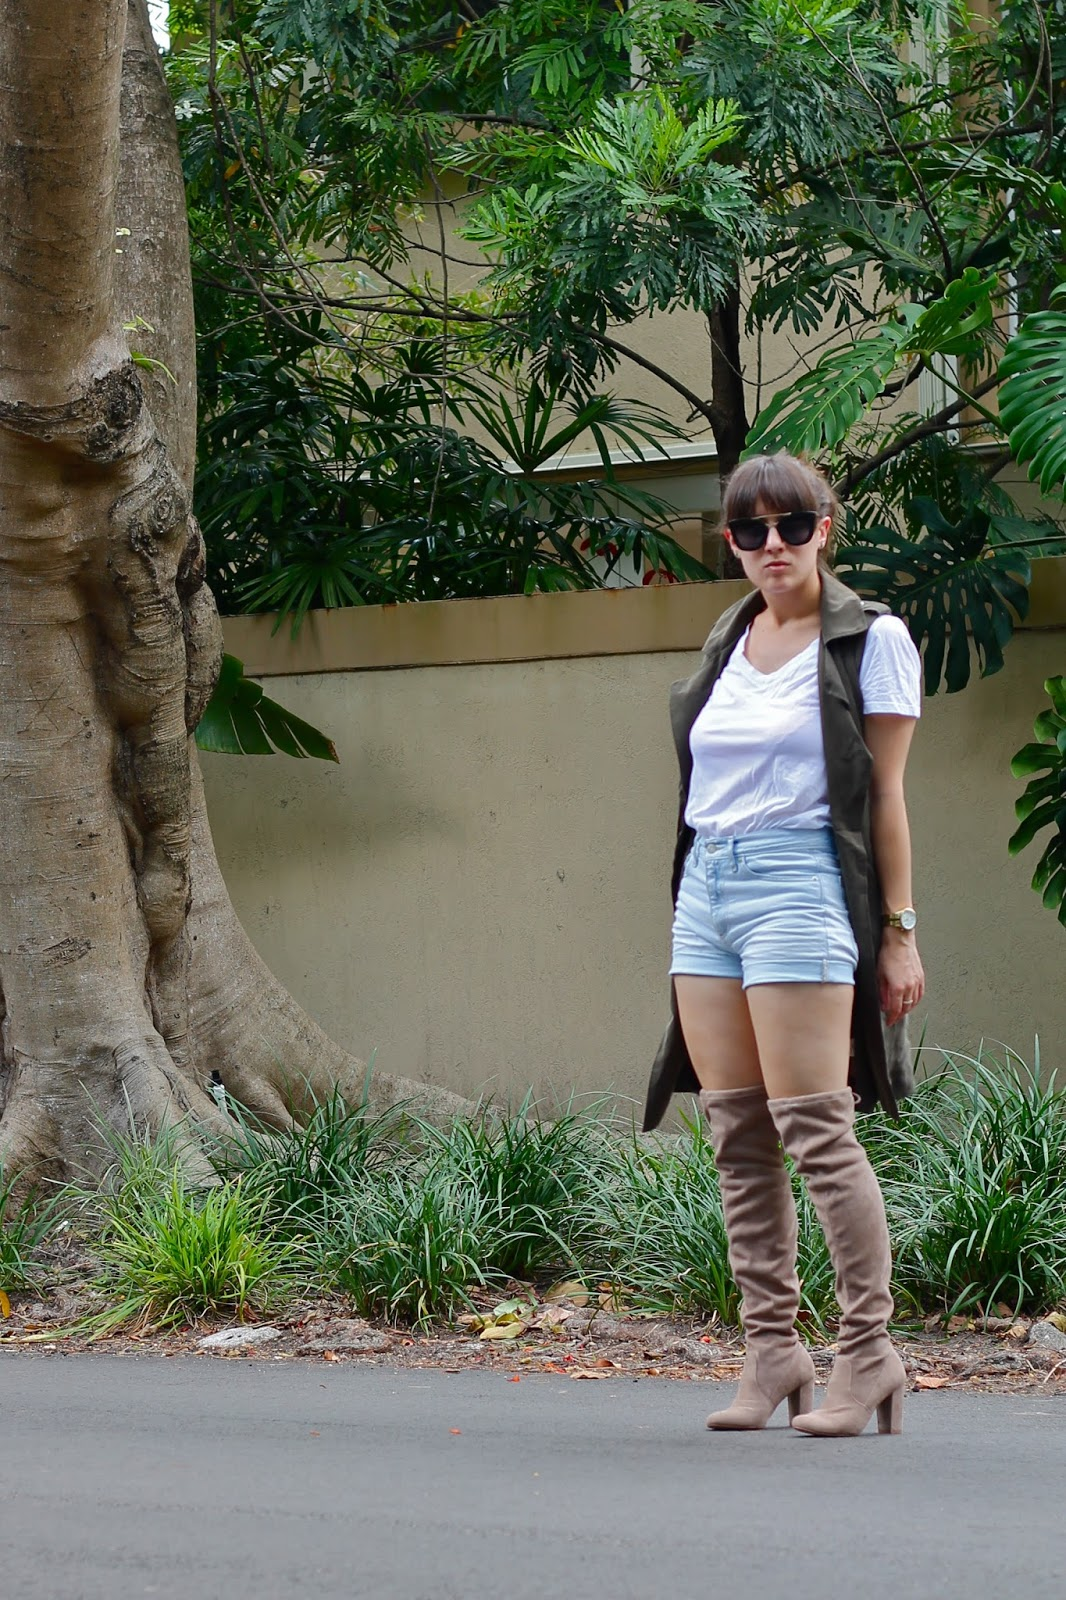 KJCOUTURE, fashion blog, style blog, Anthropologie, forever 21, Gap, NastyGal, outfit ideas, what i wore, ootd, fashion blogger, fblogger, Miami fashion blogger, Miami style, lookbook